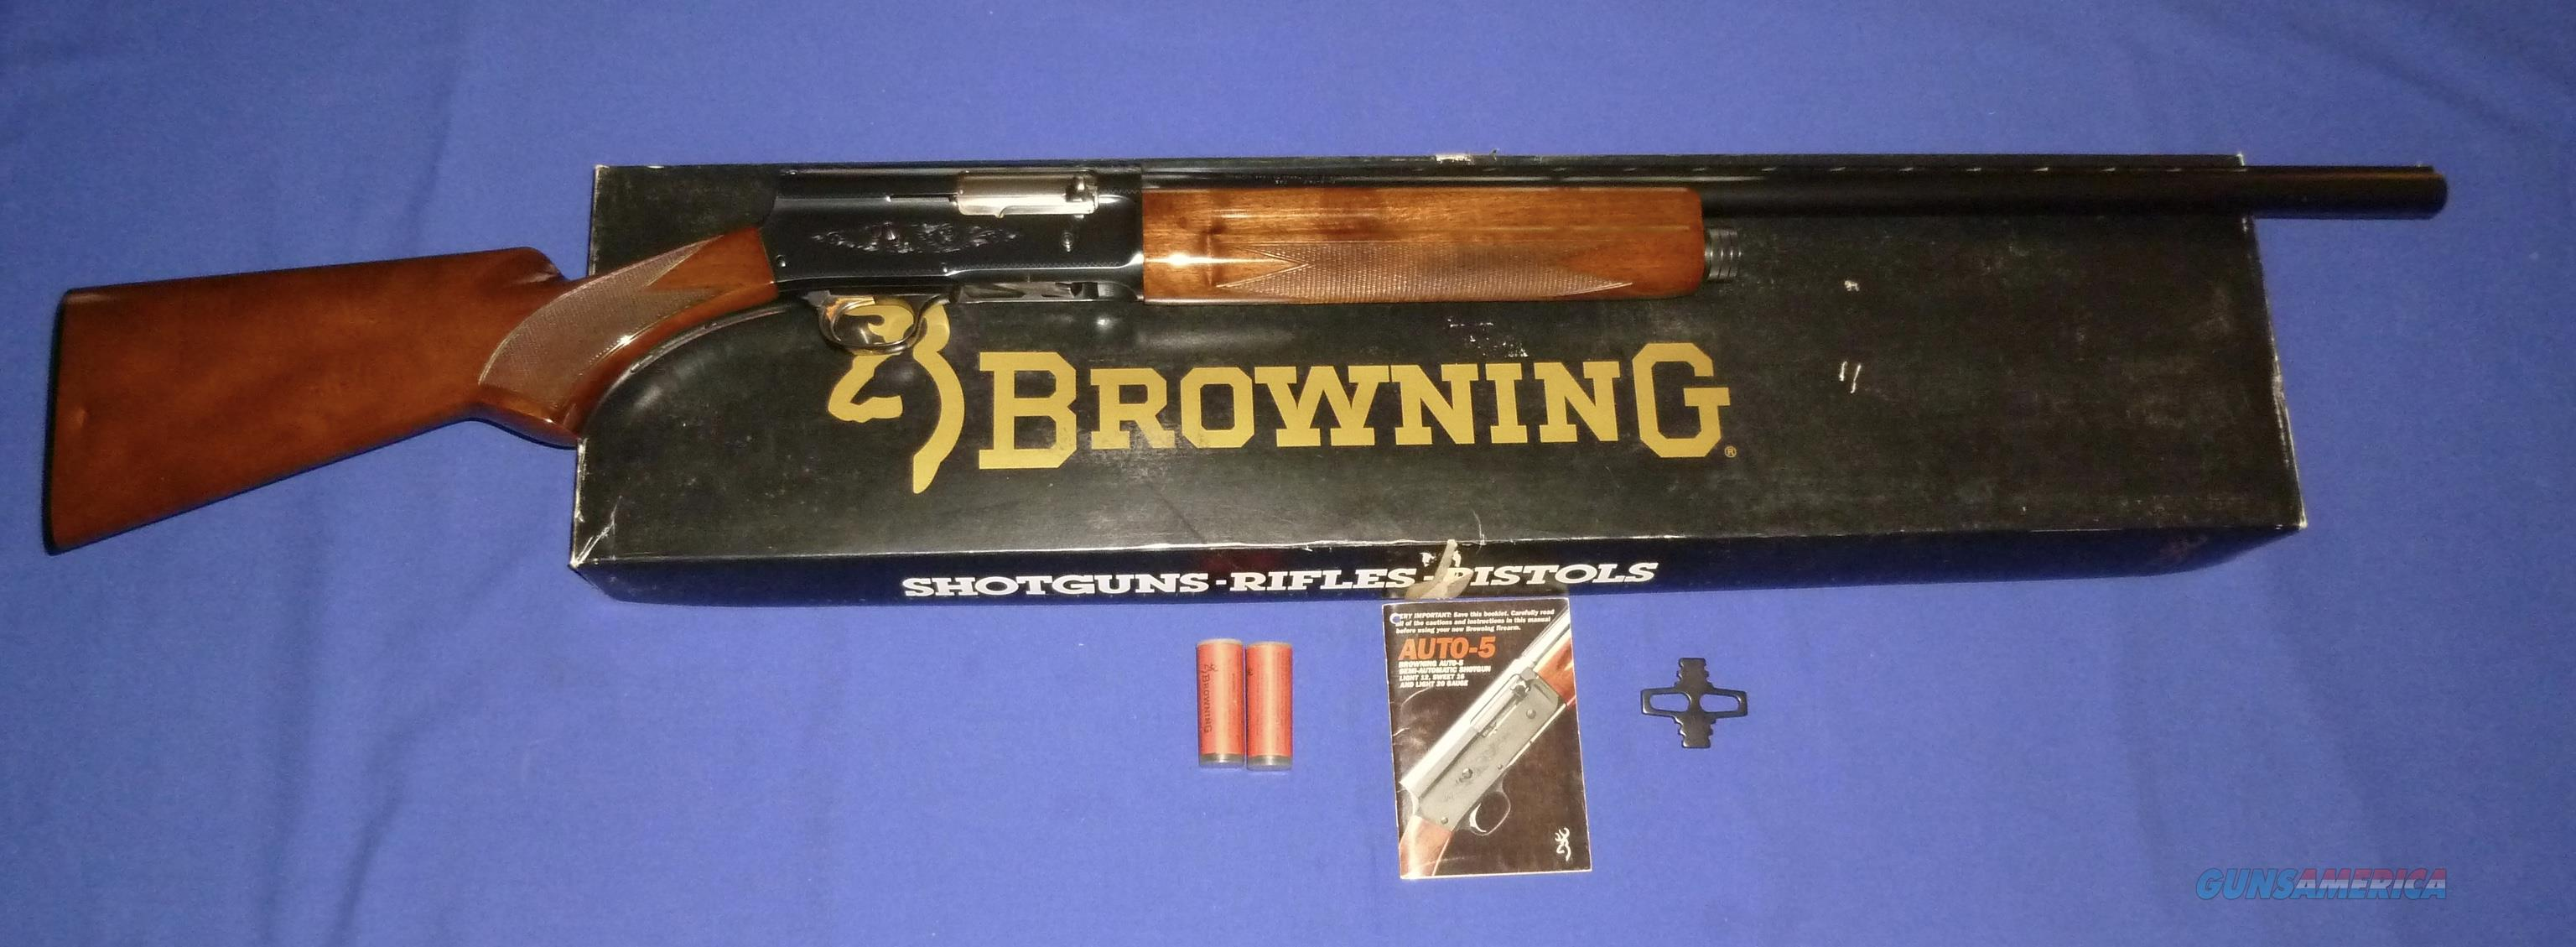 browning auto 5 light 12 12 gauge auto shotgun for sale rh gunsamerica com browning citori manual download browning citori repair manual